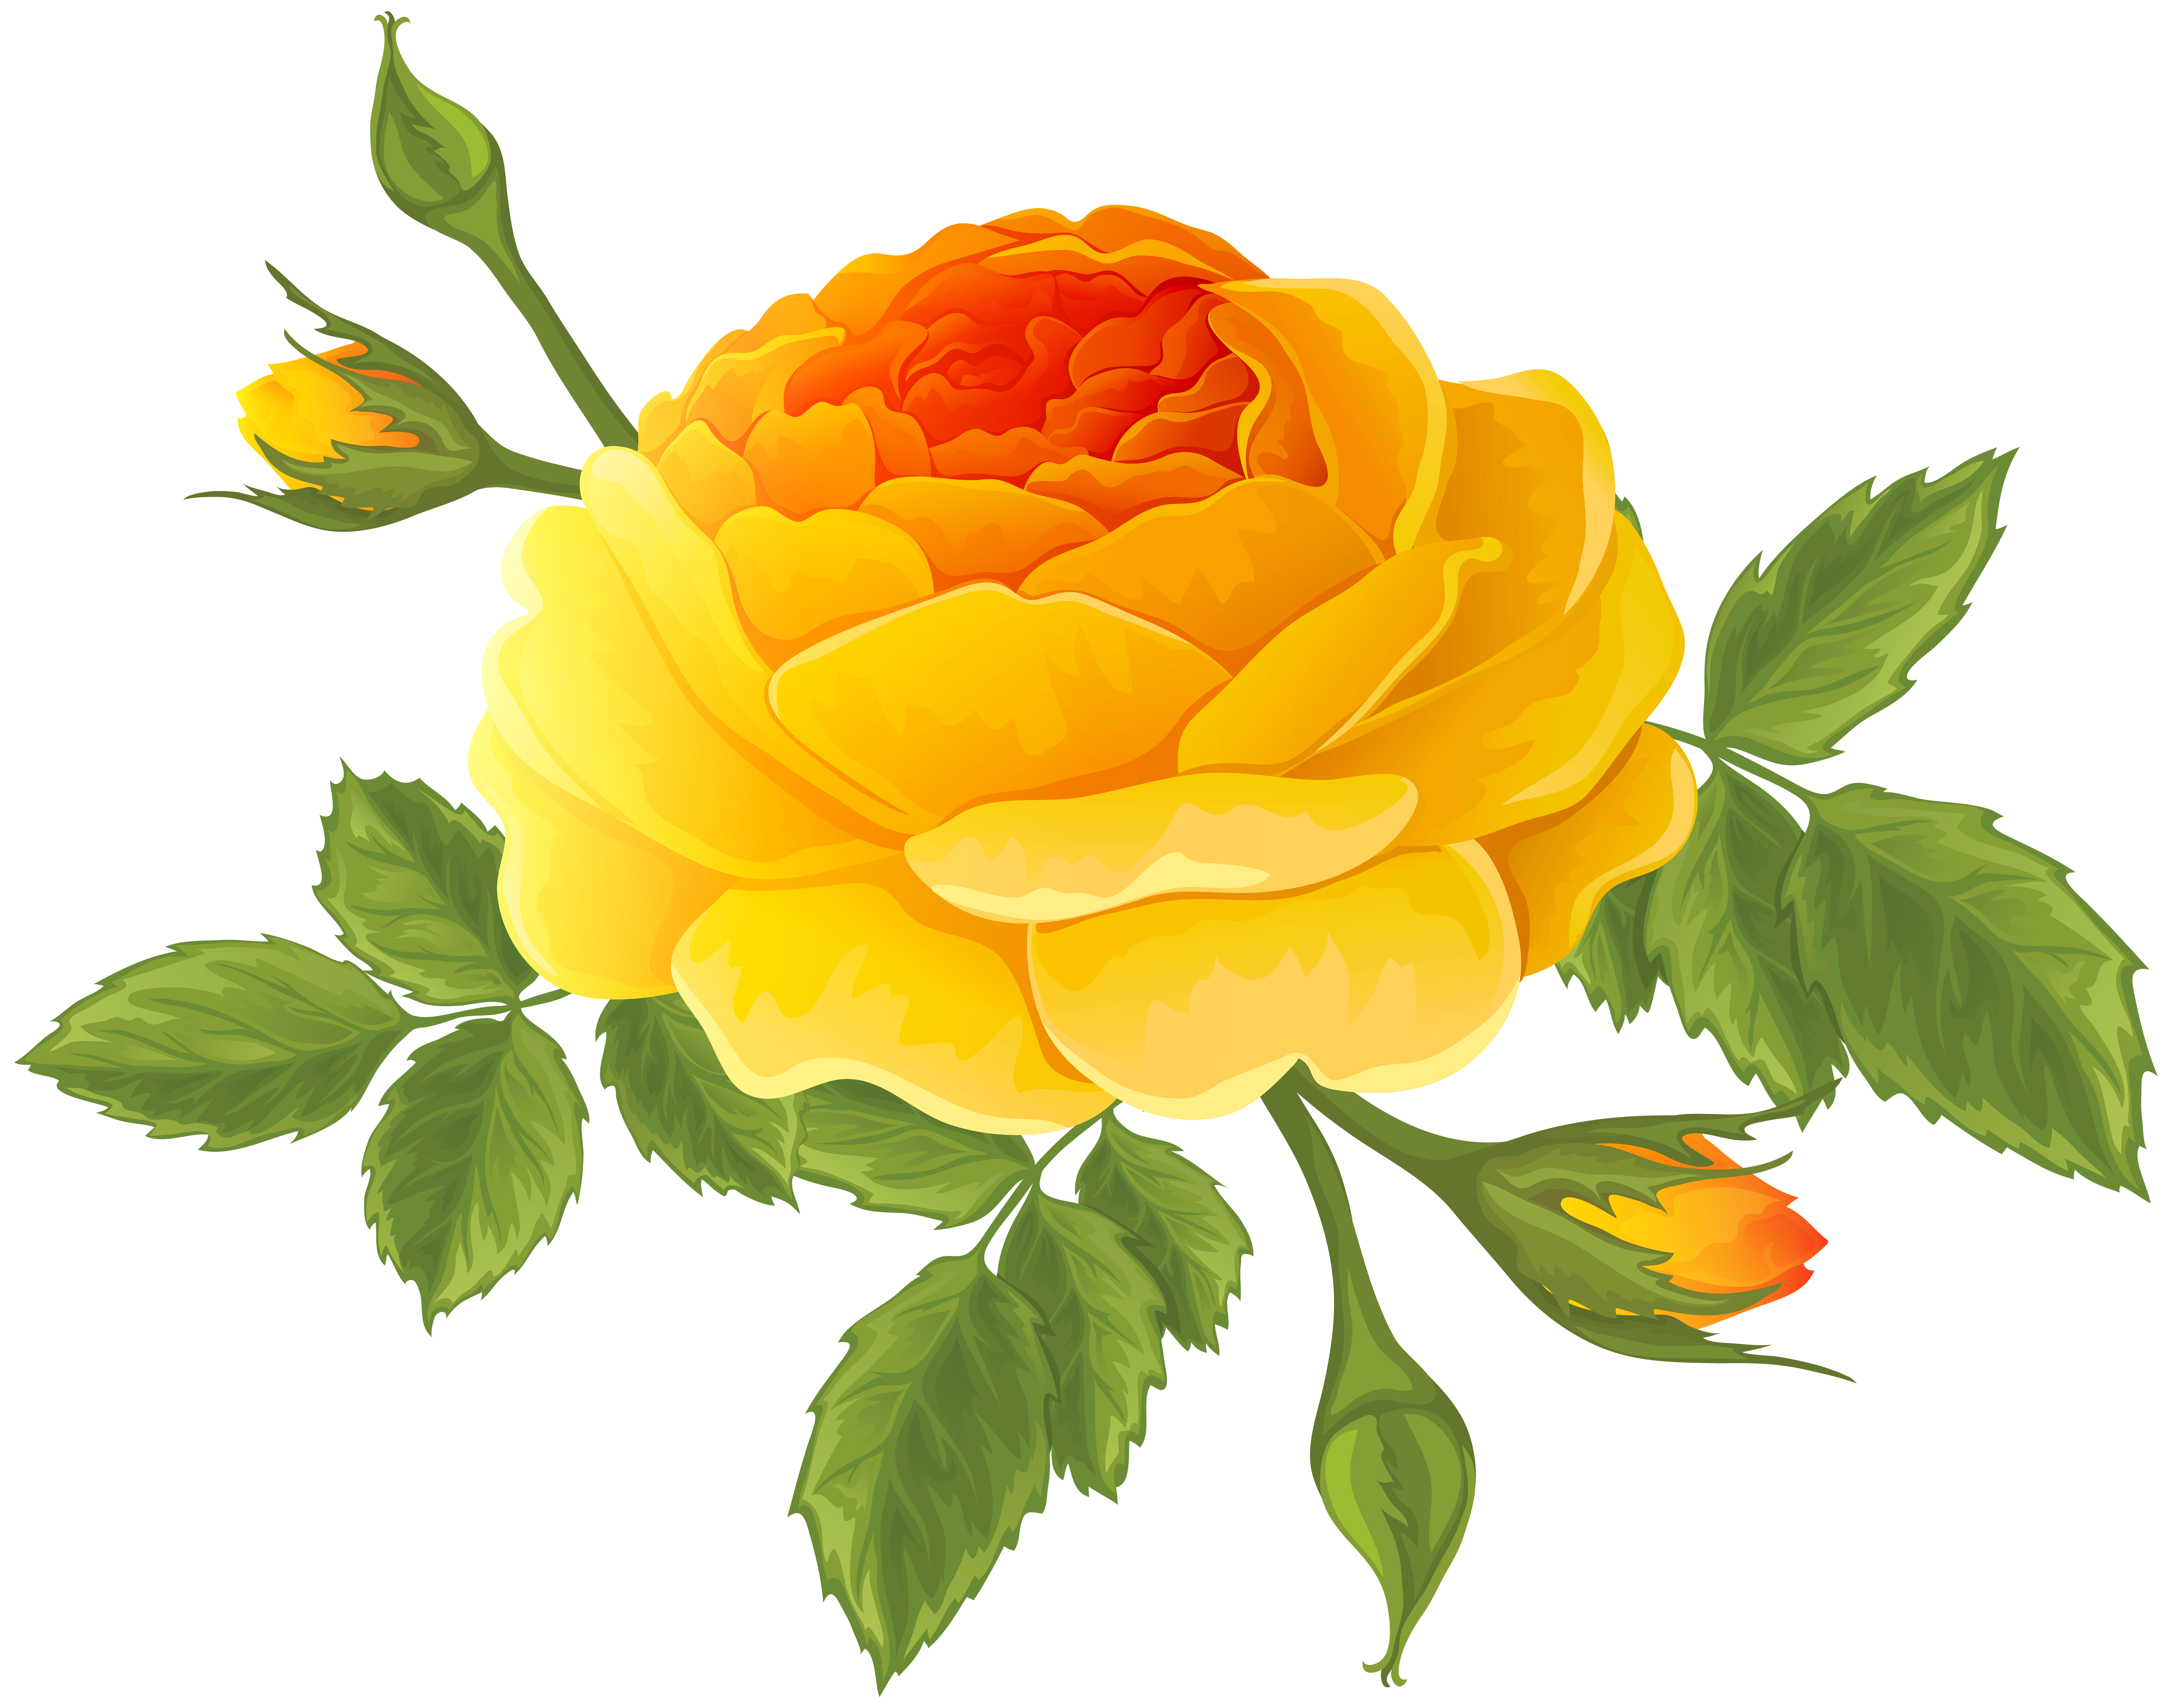 Orange with buds png. Rose clipart stick